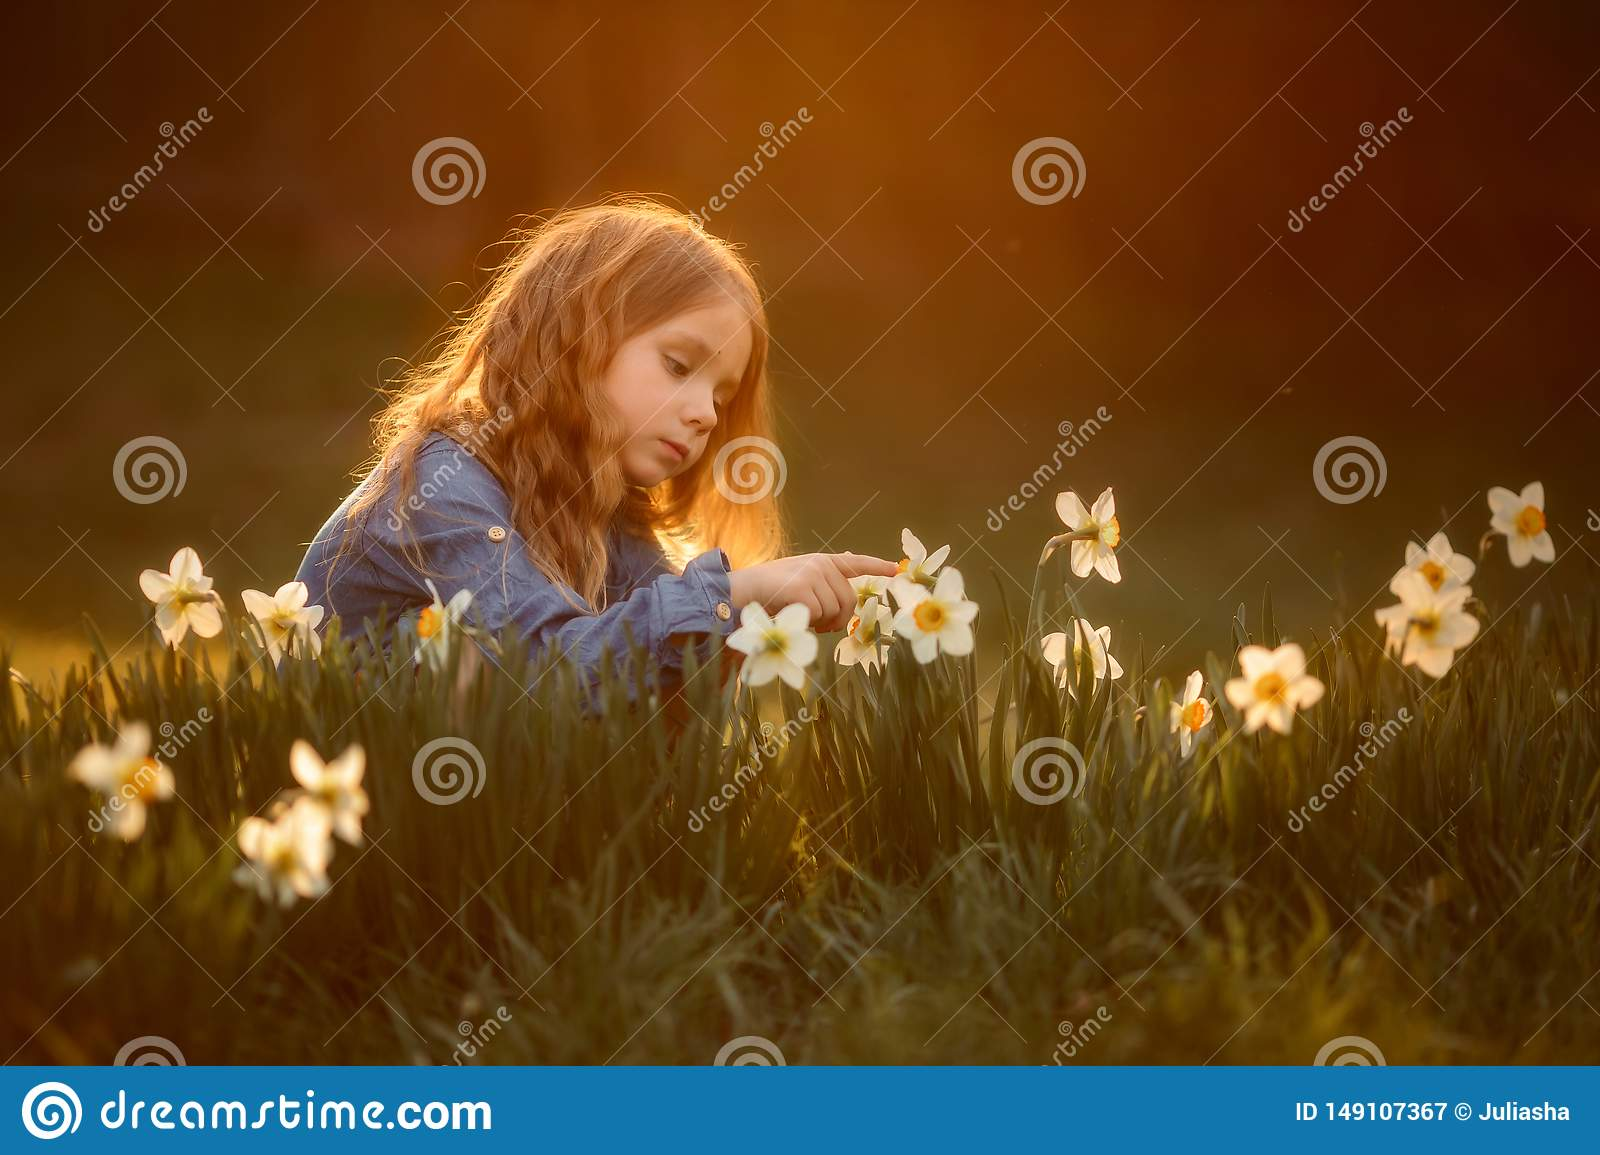 Little girl outdoor portrait near narcissus flowers at sunset